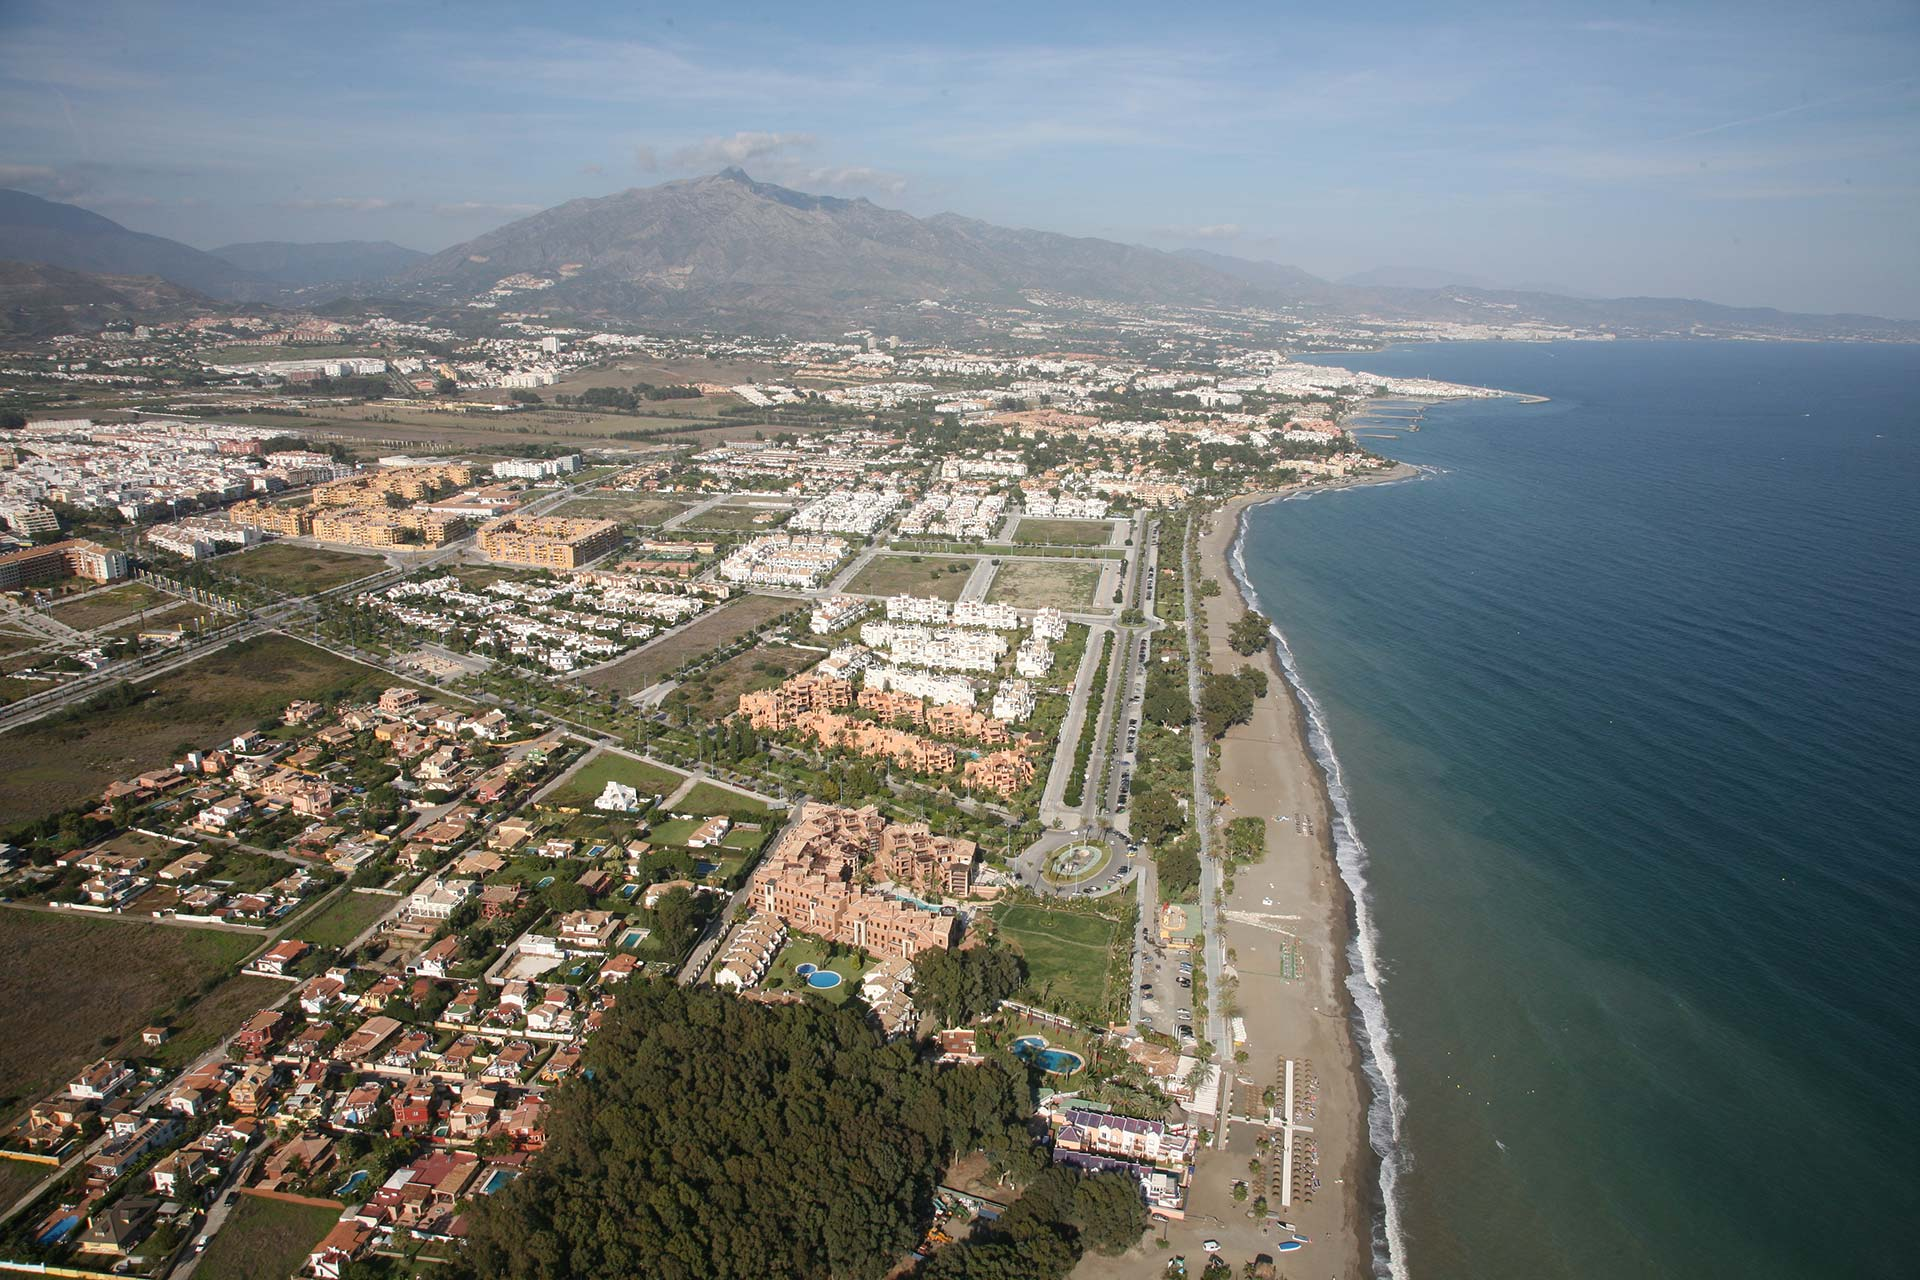 Beachside properties in Costa del Sol